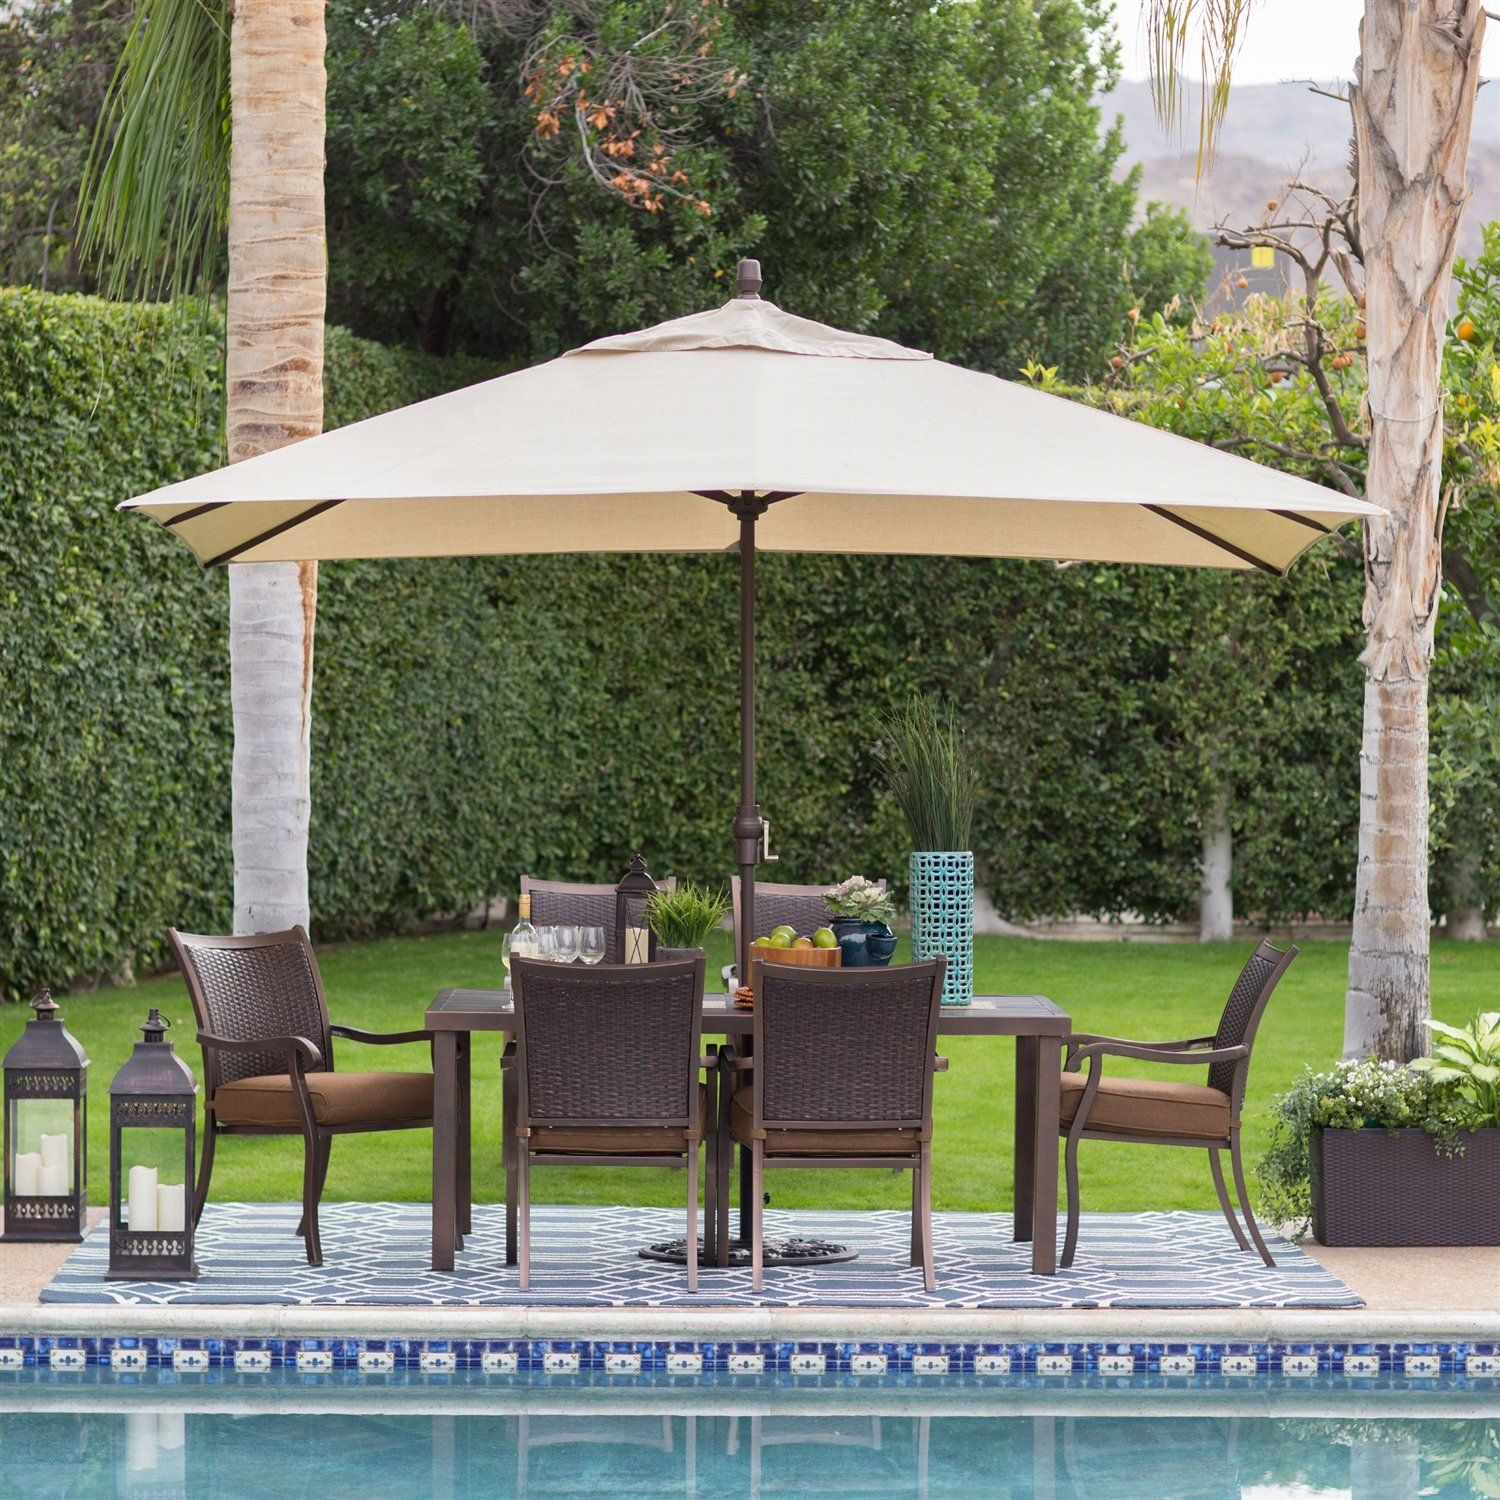 8 Ft x 11 Ft Patio Umbrella with Bronze Finish Pole and Beige Shade